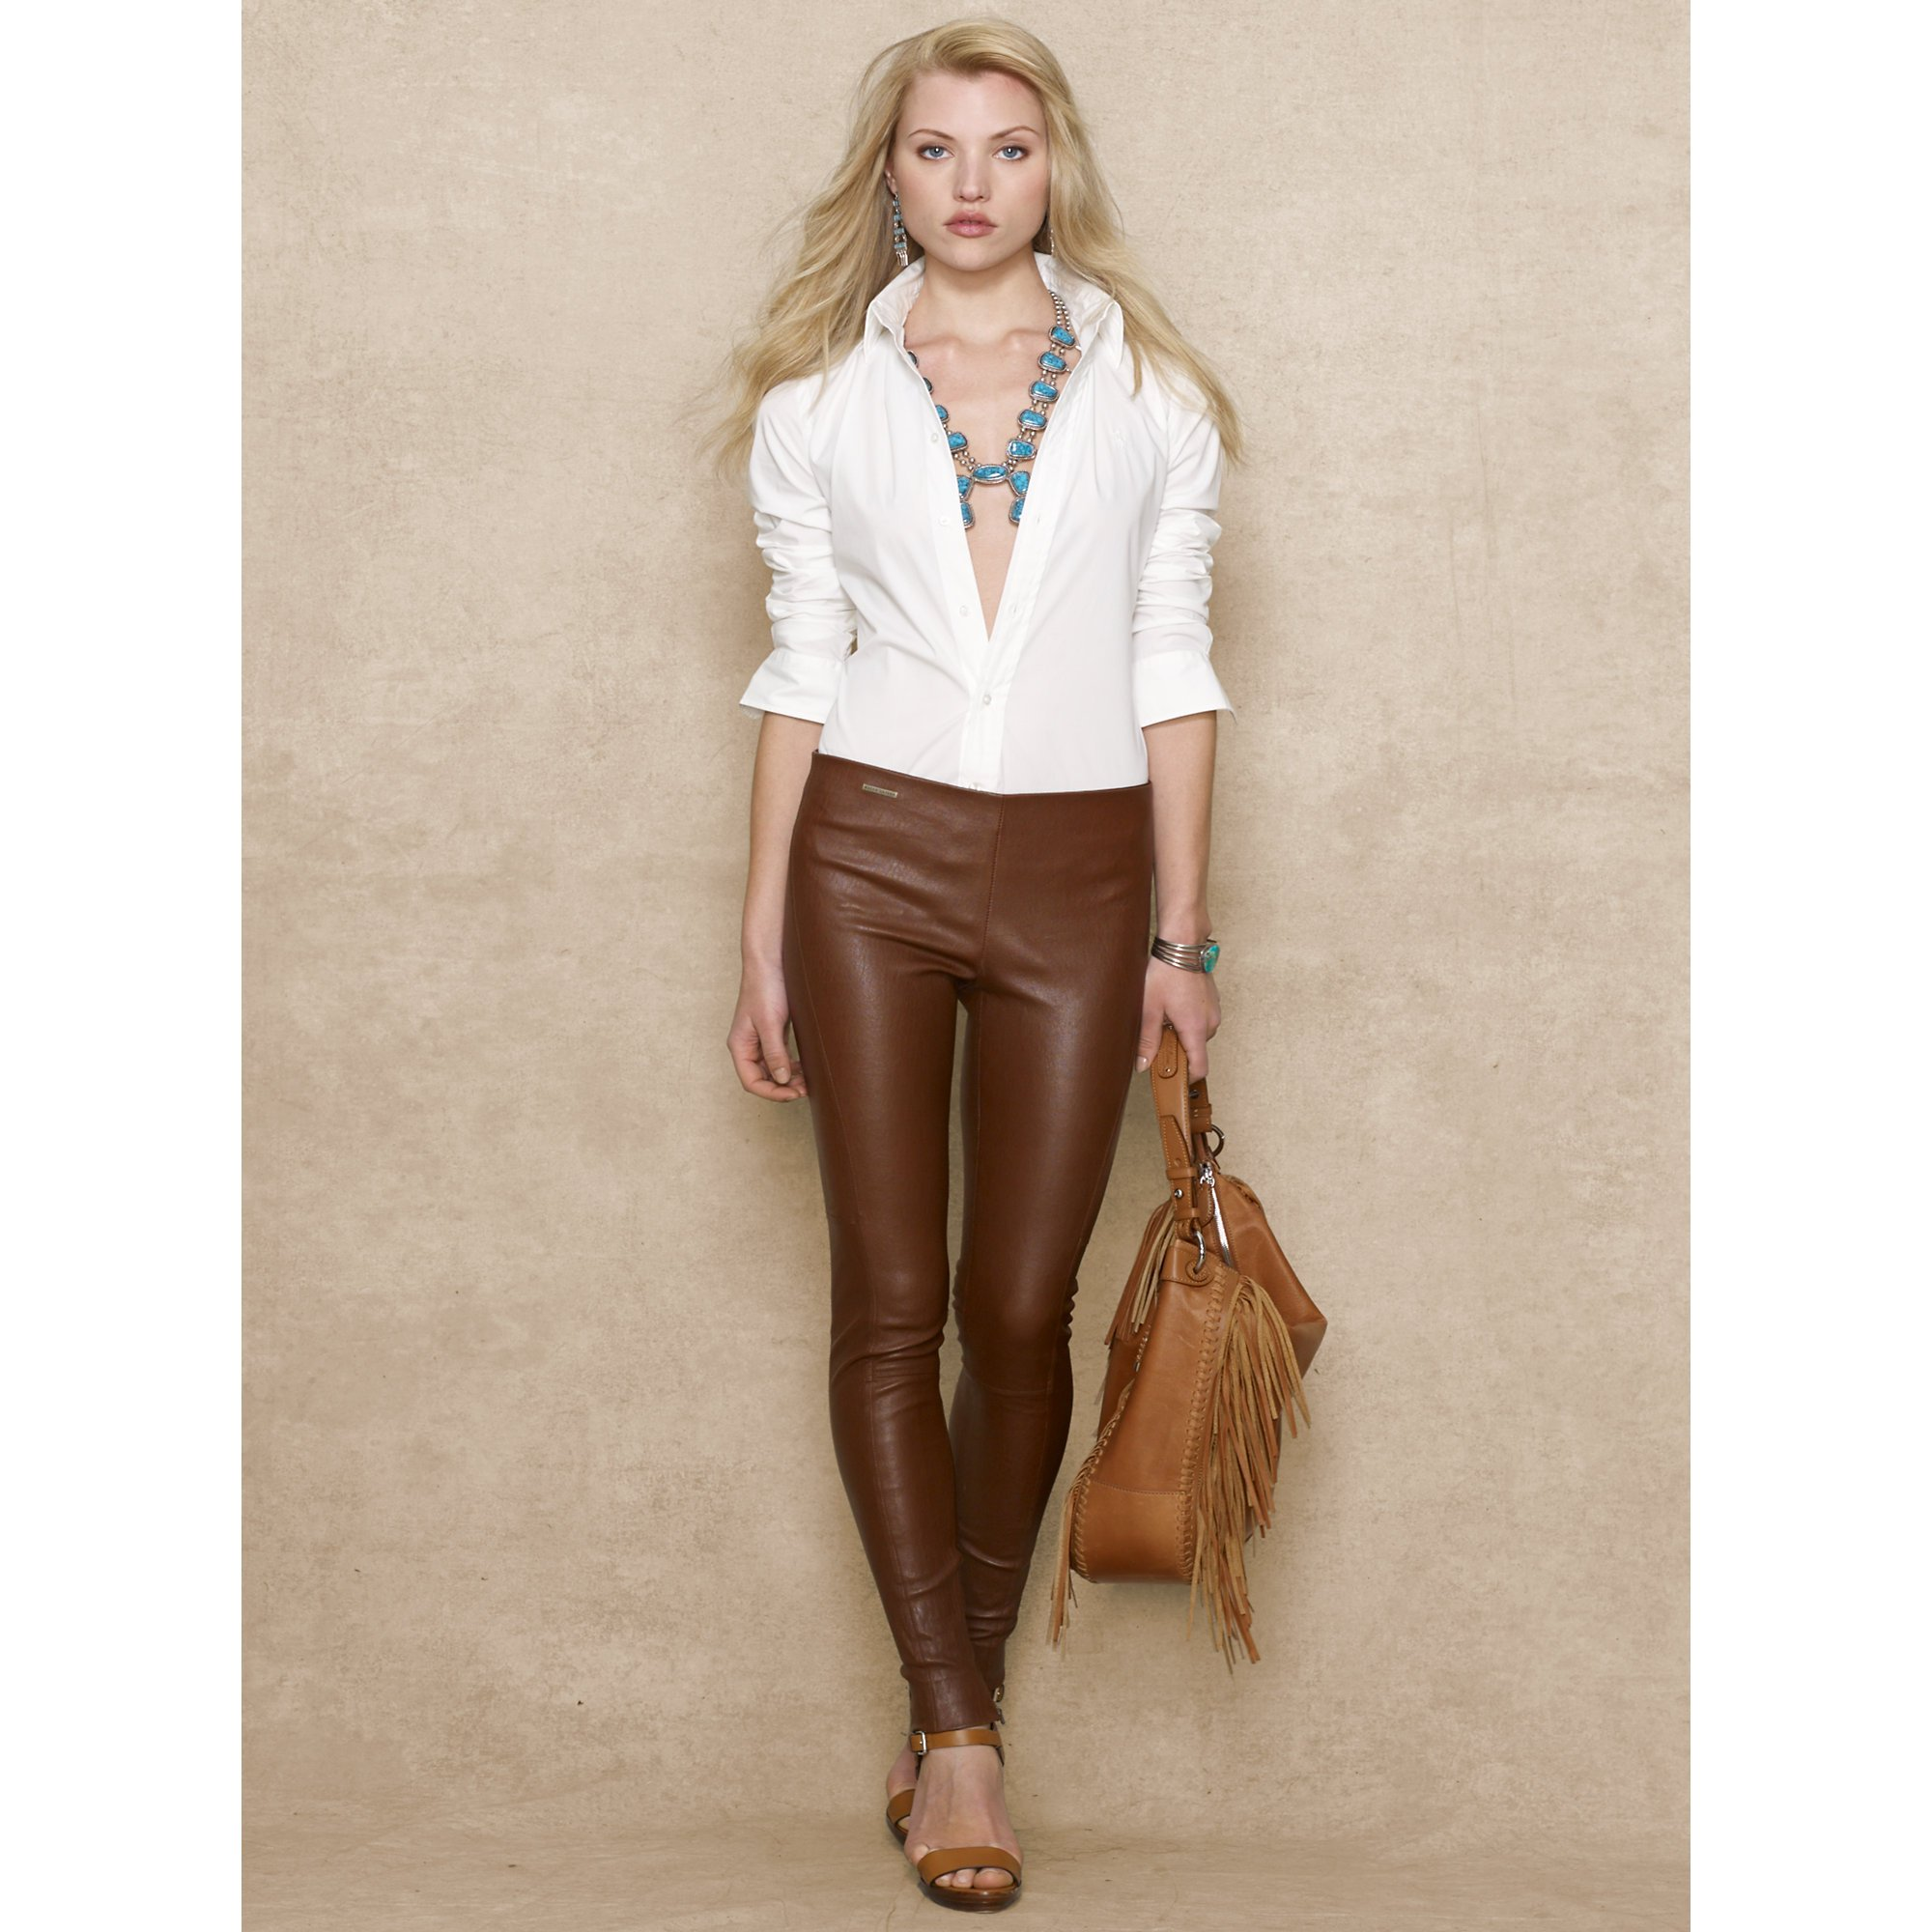 Excellent Brown Leather Pants For Women  Galleryhipcom  The Hippest Galleries